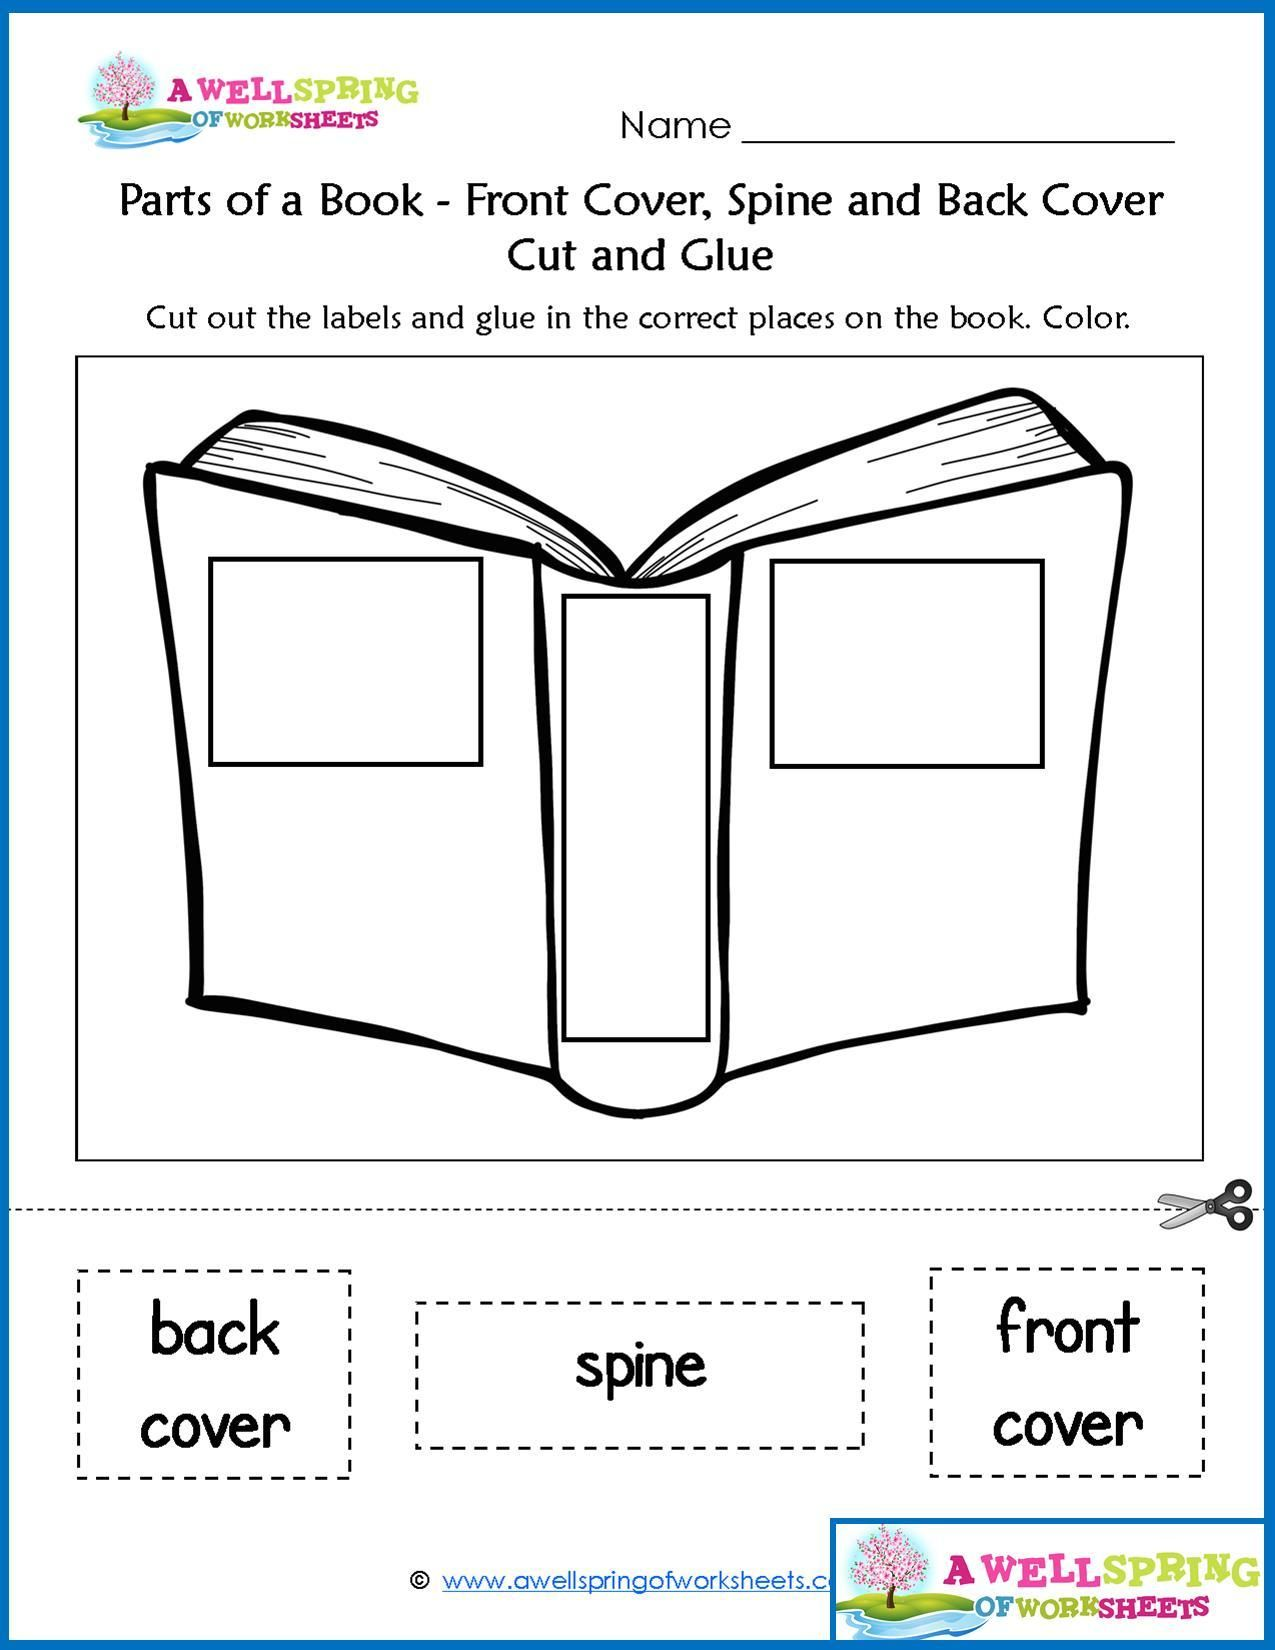 Body Worksheets For Kindergarten Worksheet Toddlers Parts Of A also Worksheets by Subject   A Wellspring of Worksheets also Worksheets by Subject   A Wellspring of Worksheets also Parts of a Fiction Text   Worksheet   Education besides  further  besides Parts Of A Book Worksheets Booklet For Plants We Eat Parts Of A Book as well The Book Bug  Parts of a Book  Good Fit Books  and Shelf Order additionally RL K 6 Worksheets    mon Core ELA likewise Parts Of A Book Worksheet Grade Worksheets For All Download Special moreover Parts of a Book   Parts of a Book   Liry lesson plans  Liry together with Parts of a book lesson 2nd besides  also Worksheets by Subject   Reading Activities   Parts of a book in addition  as well Parts of a Book by The Learning Liry   Teachers Pay Teachers. on parts of a book worksheet